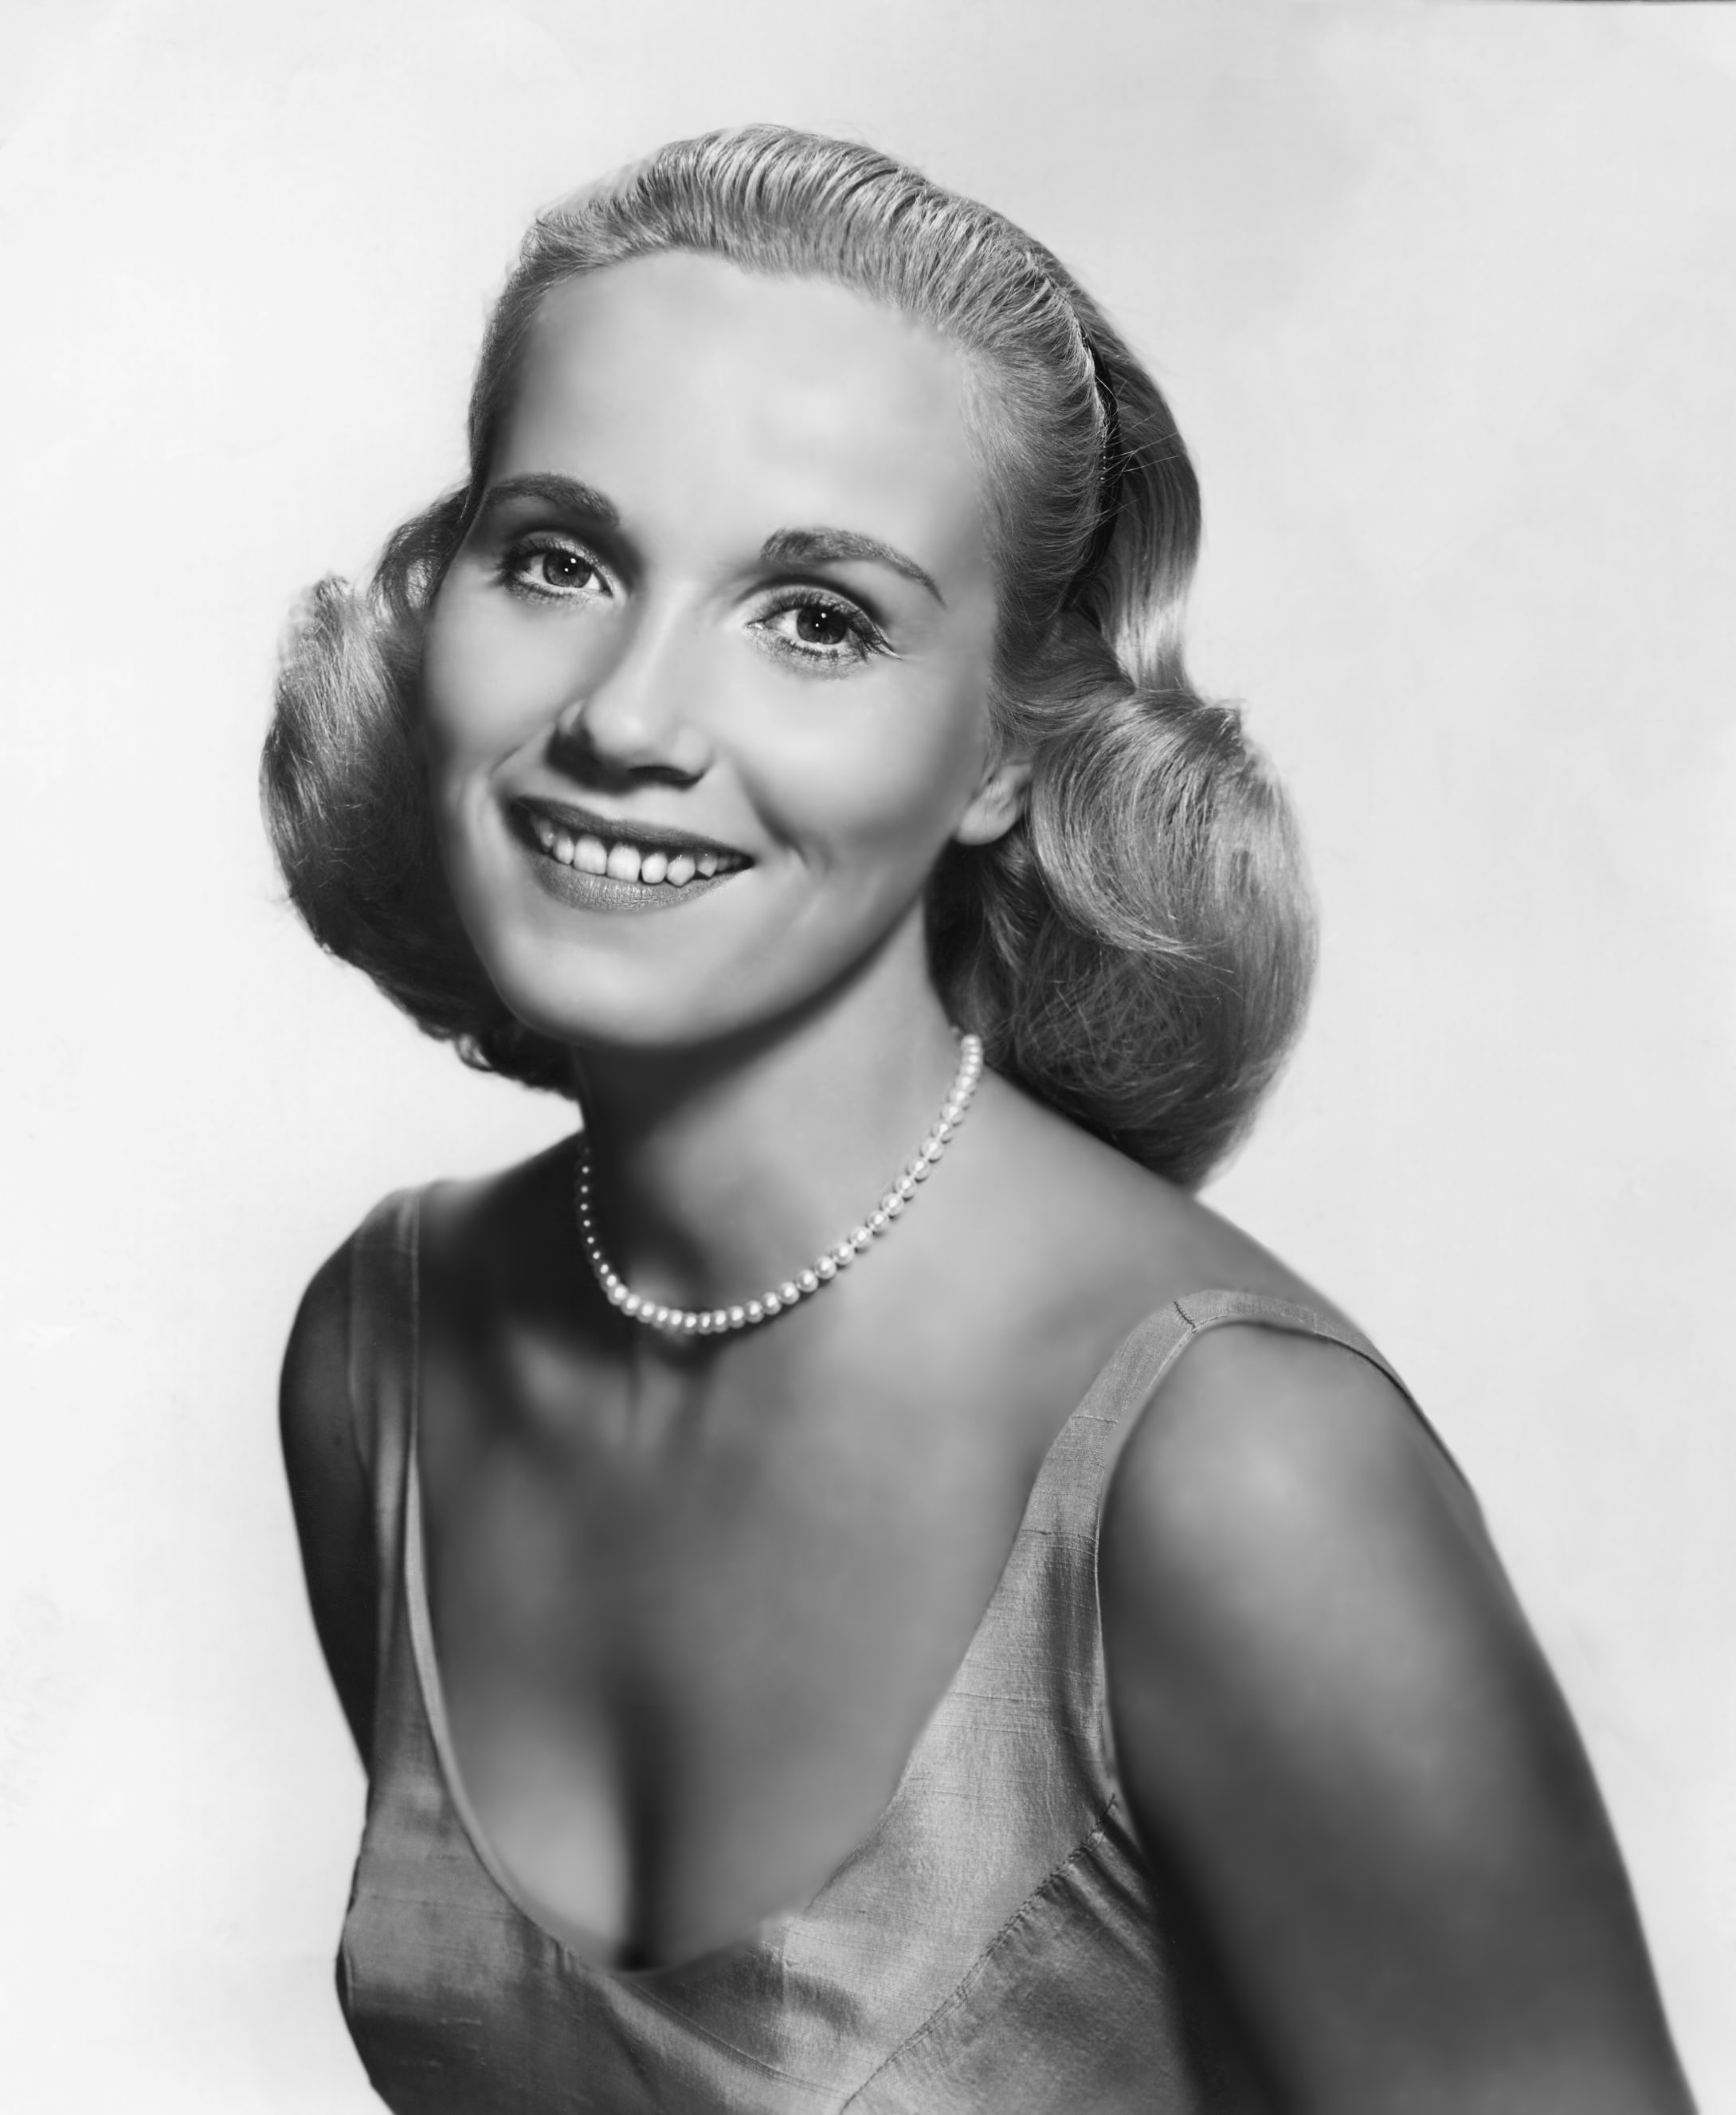 Eva Marie Saint Background